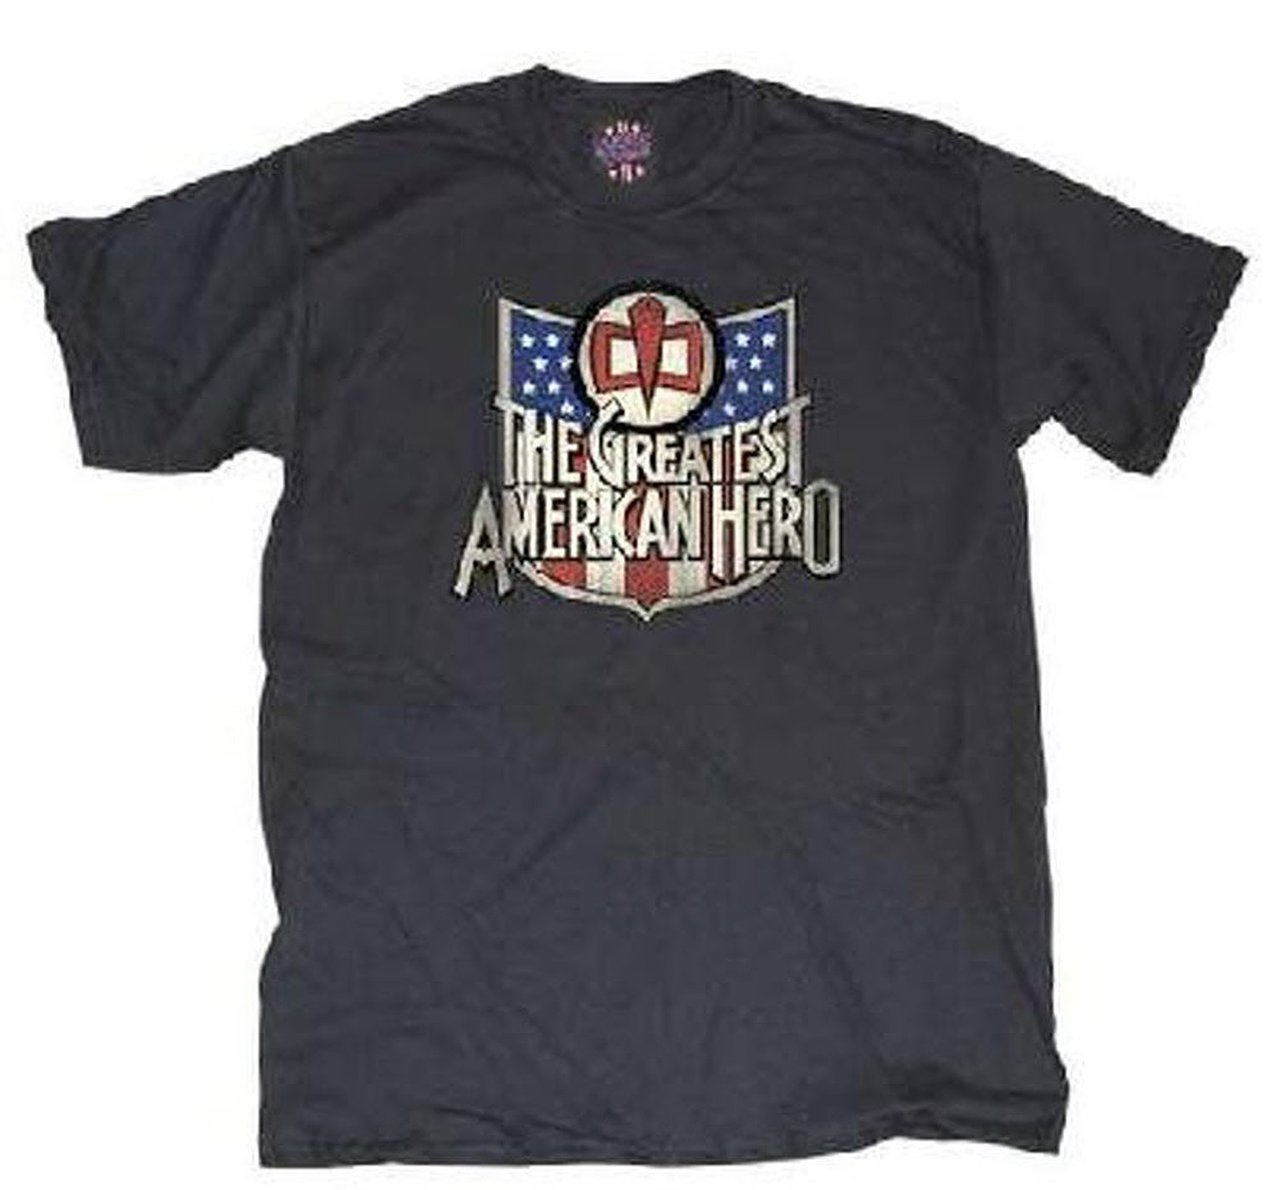 The Greatest American Hero Vintage T-shirt - Black - L